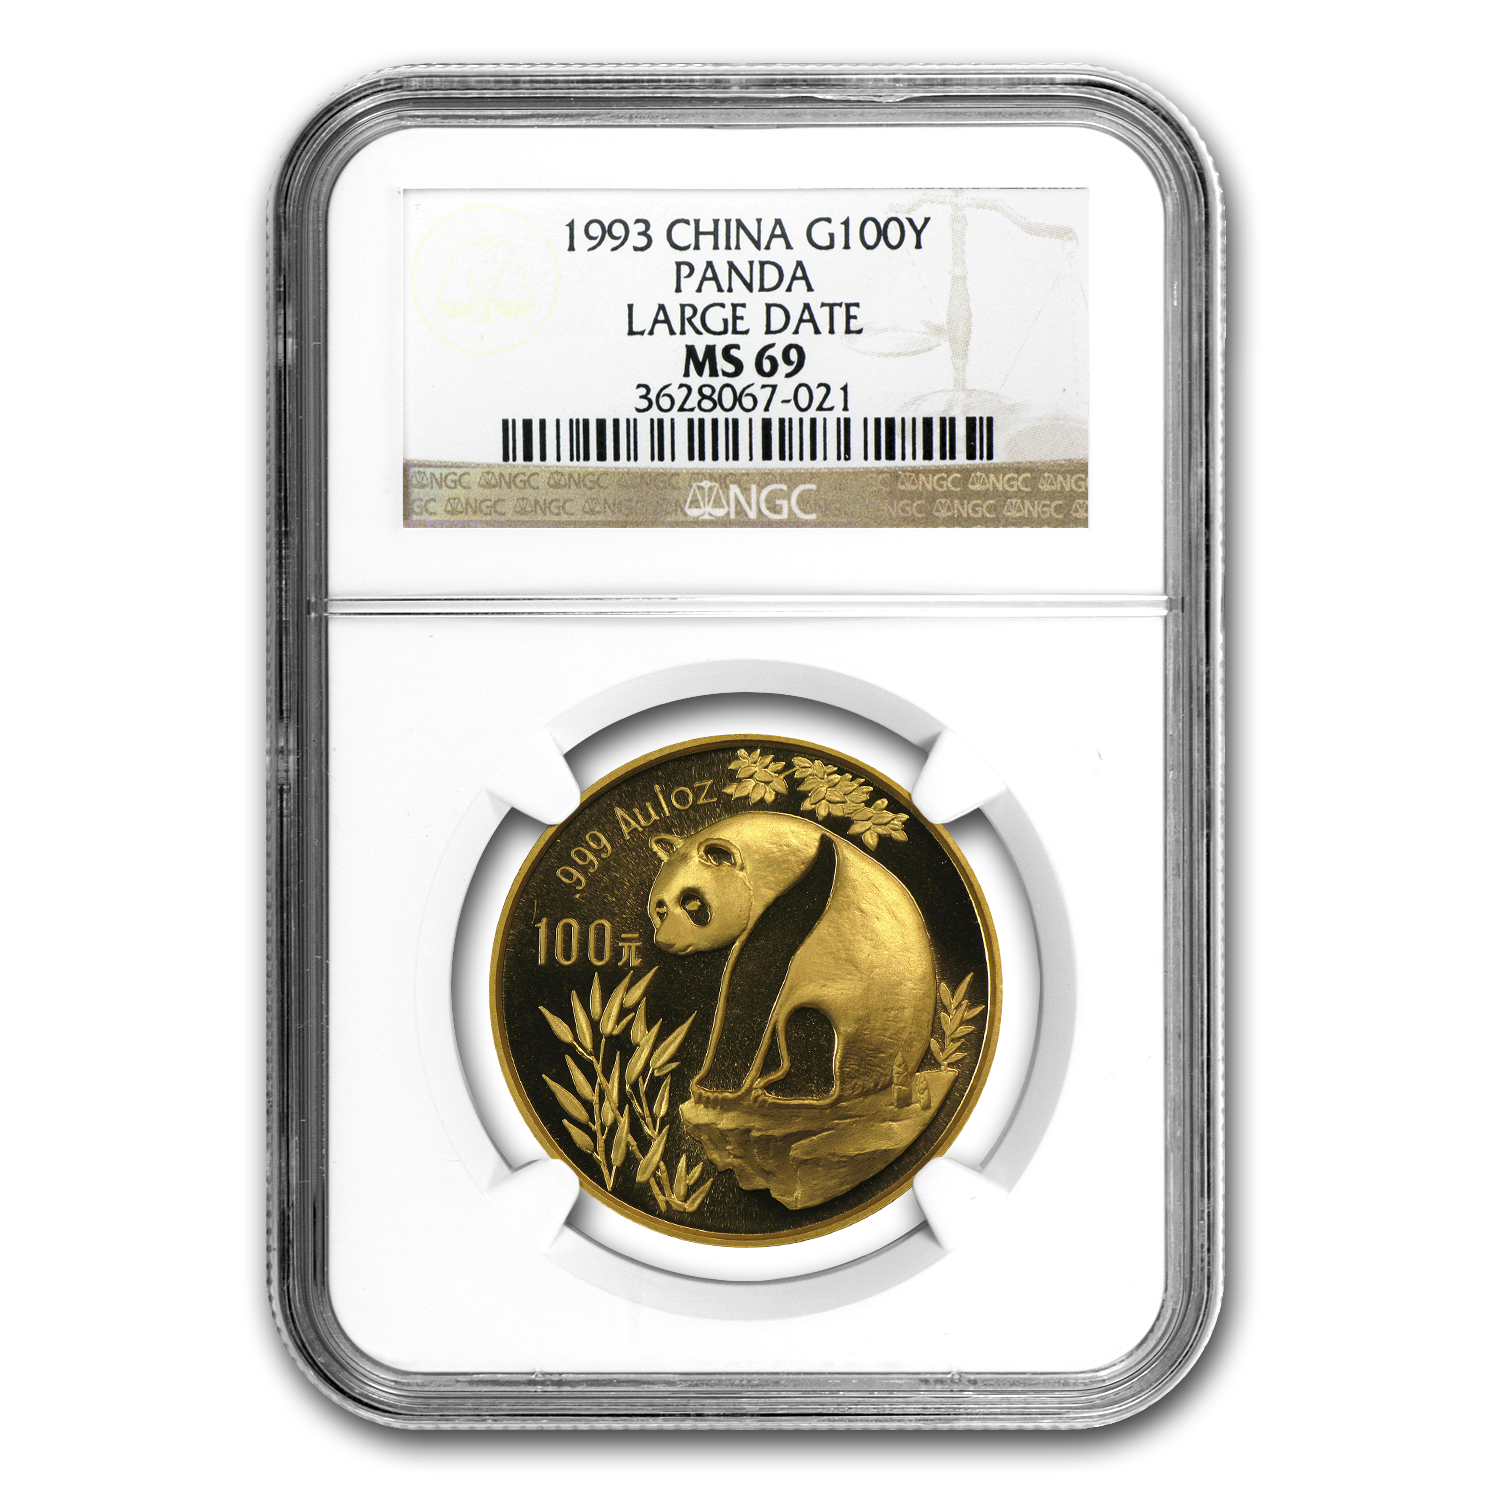 1993 1 oz Gold Chinese Panda Large Date MS-69 NGC